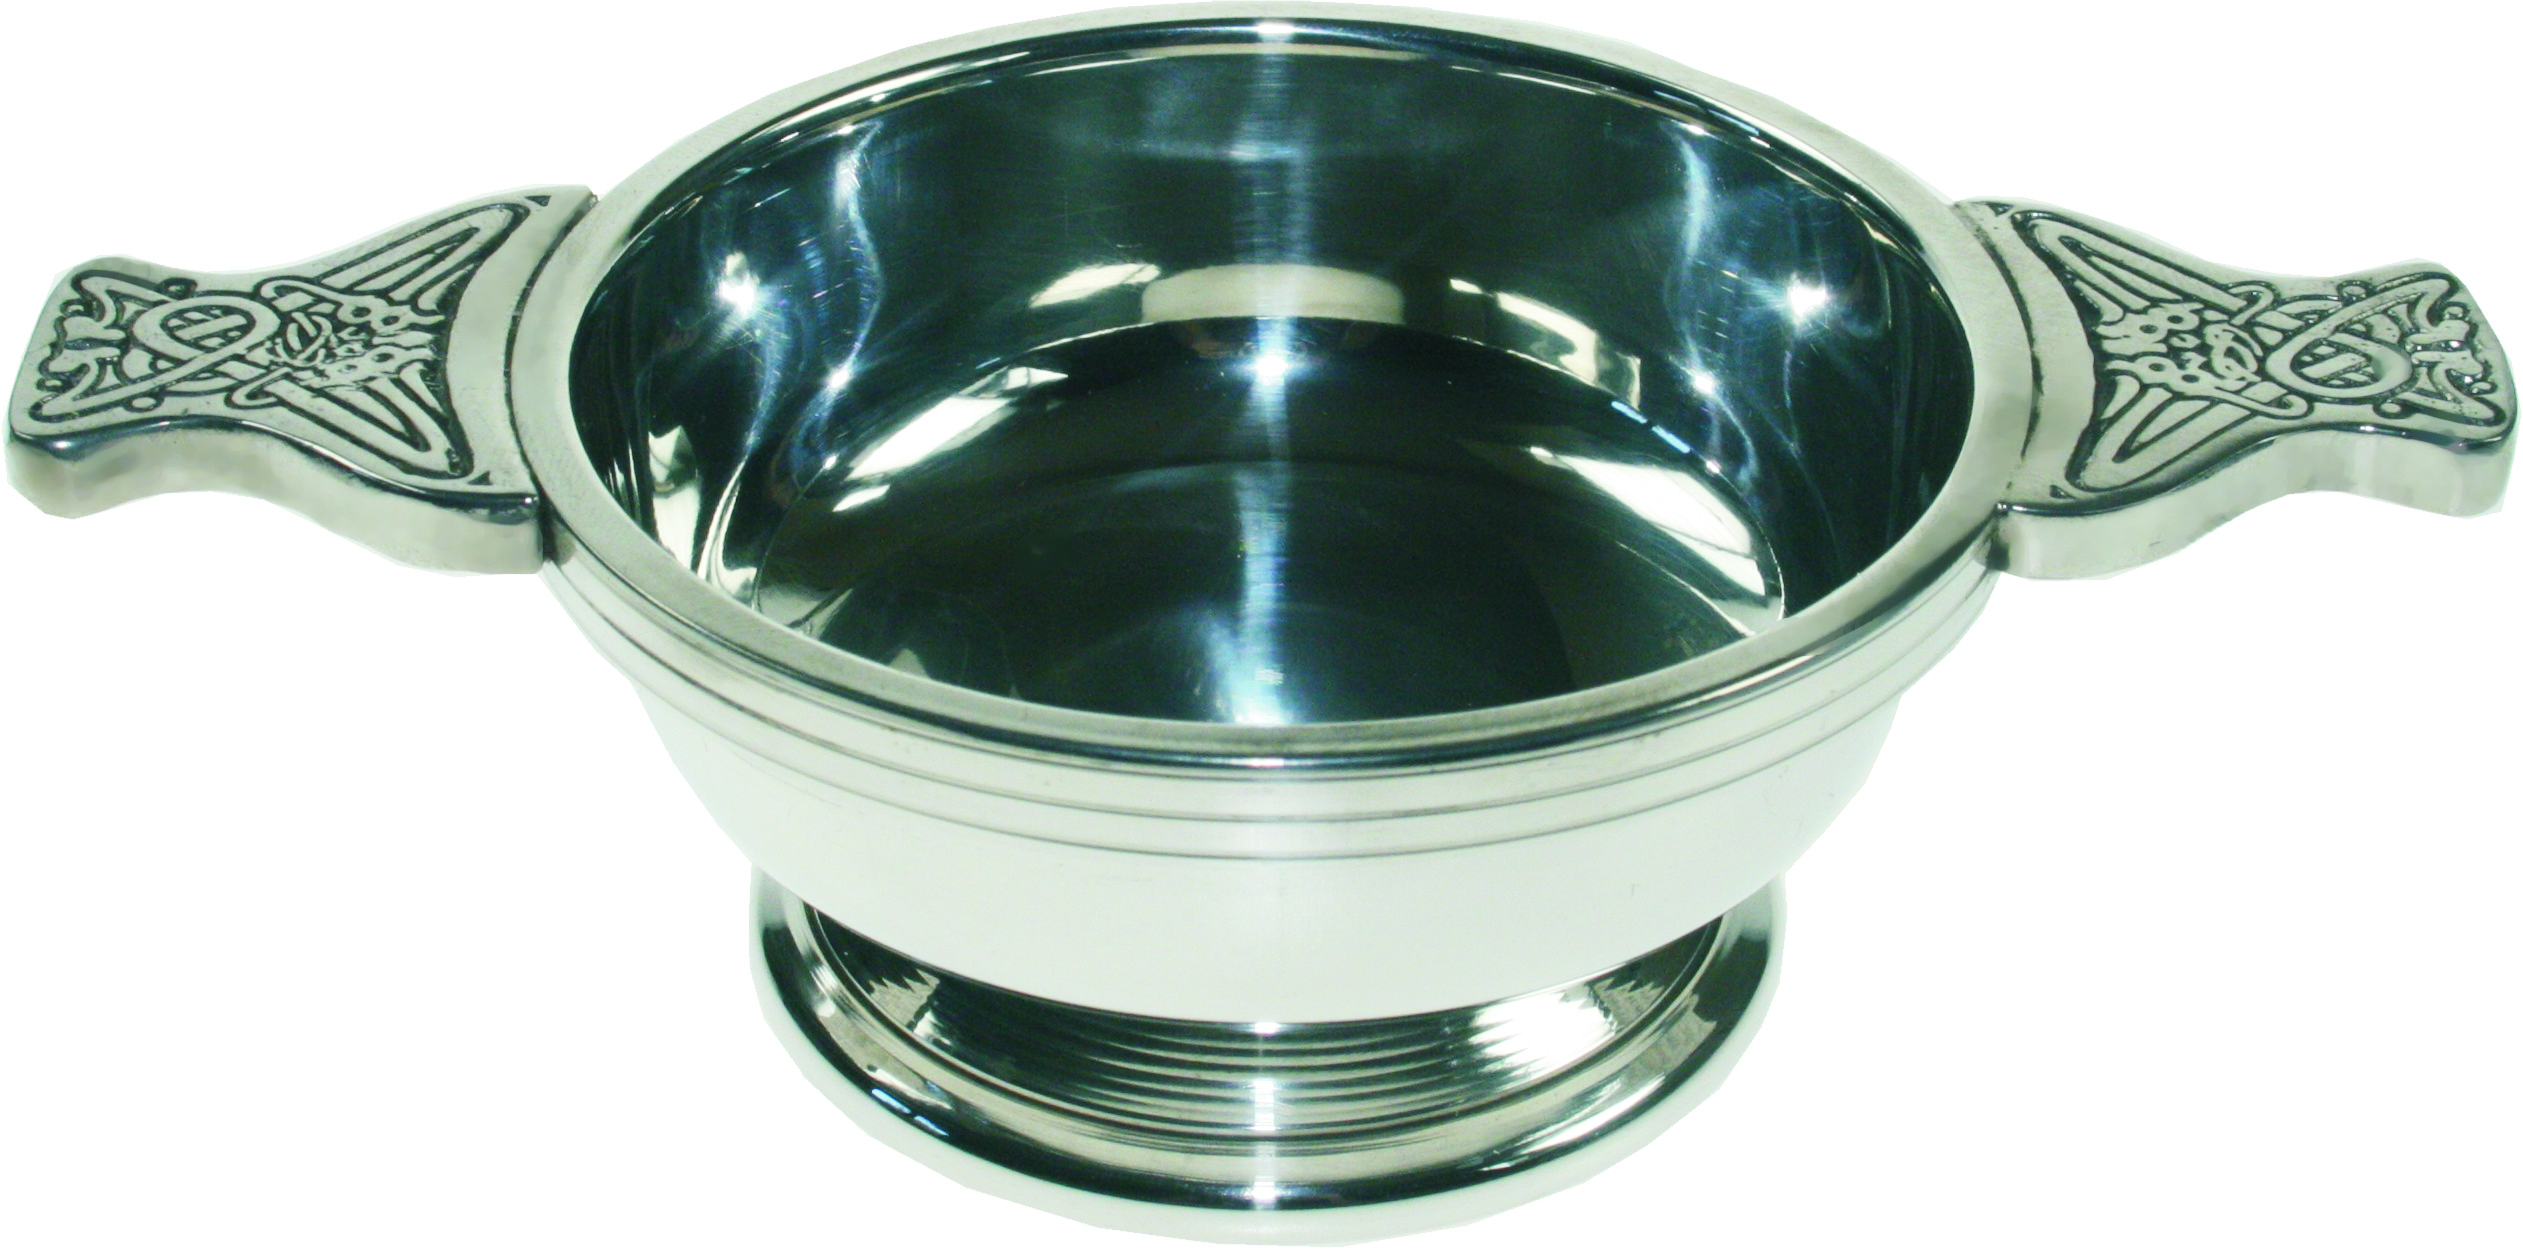 "Pewter Quaich Bowl with Celtic Patterned Handle 9cm (3.5"")"